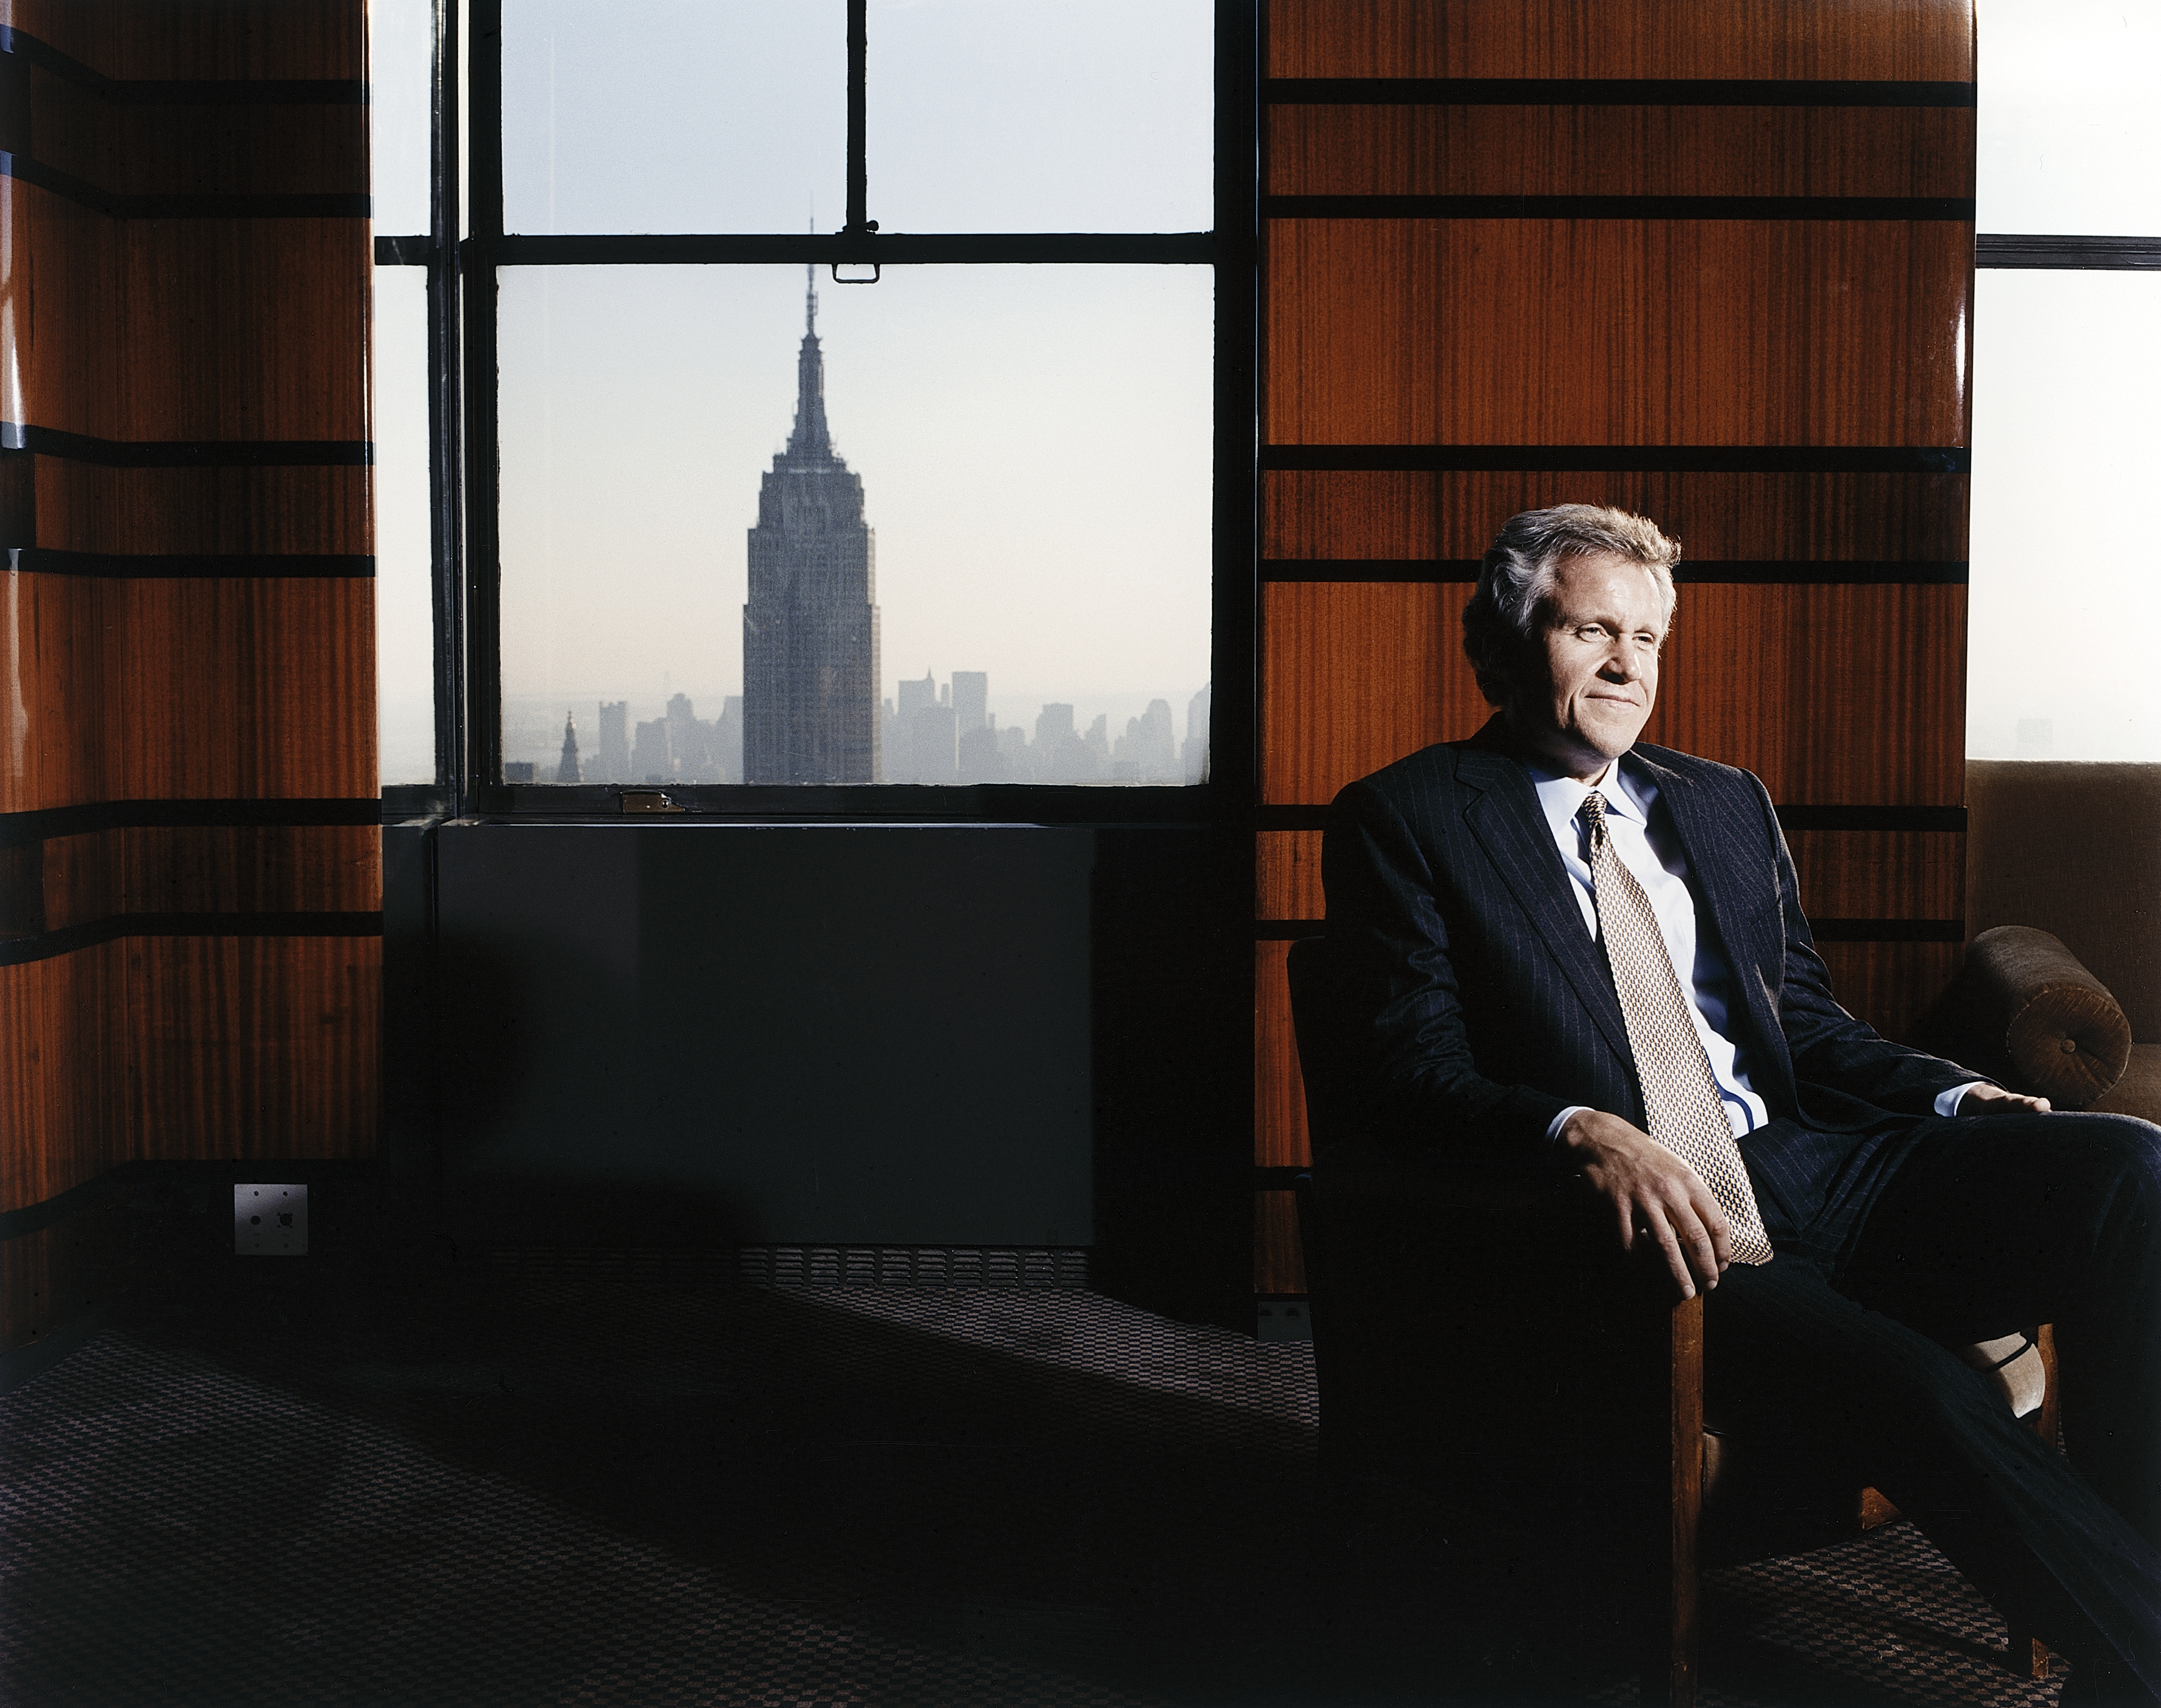 General Electric CEO Jeff Immelt in his office at the GE Building.